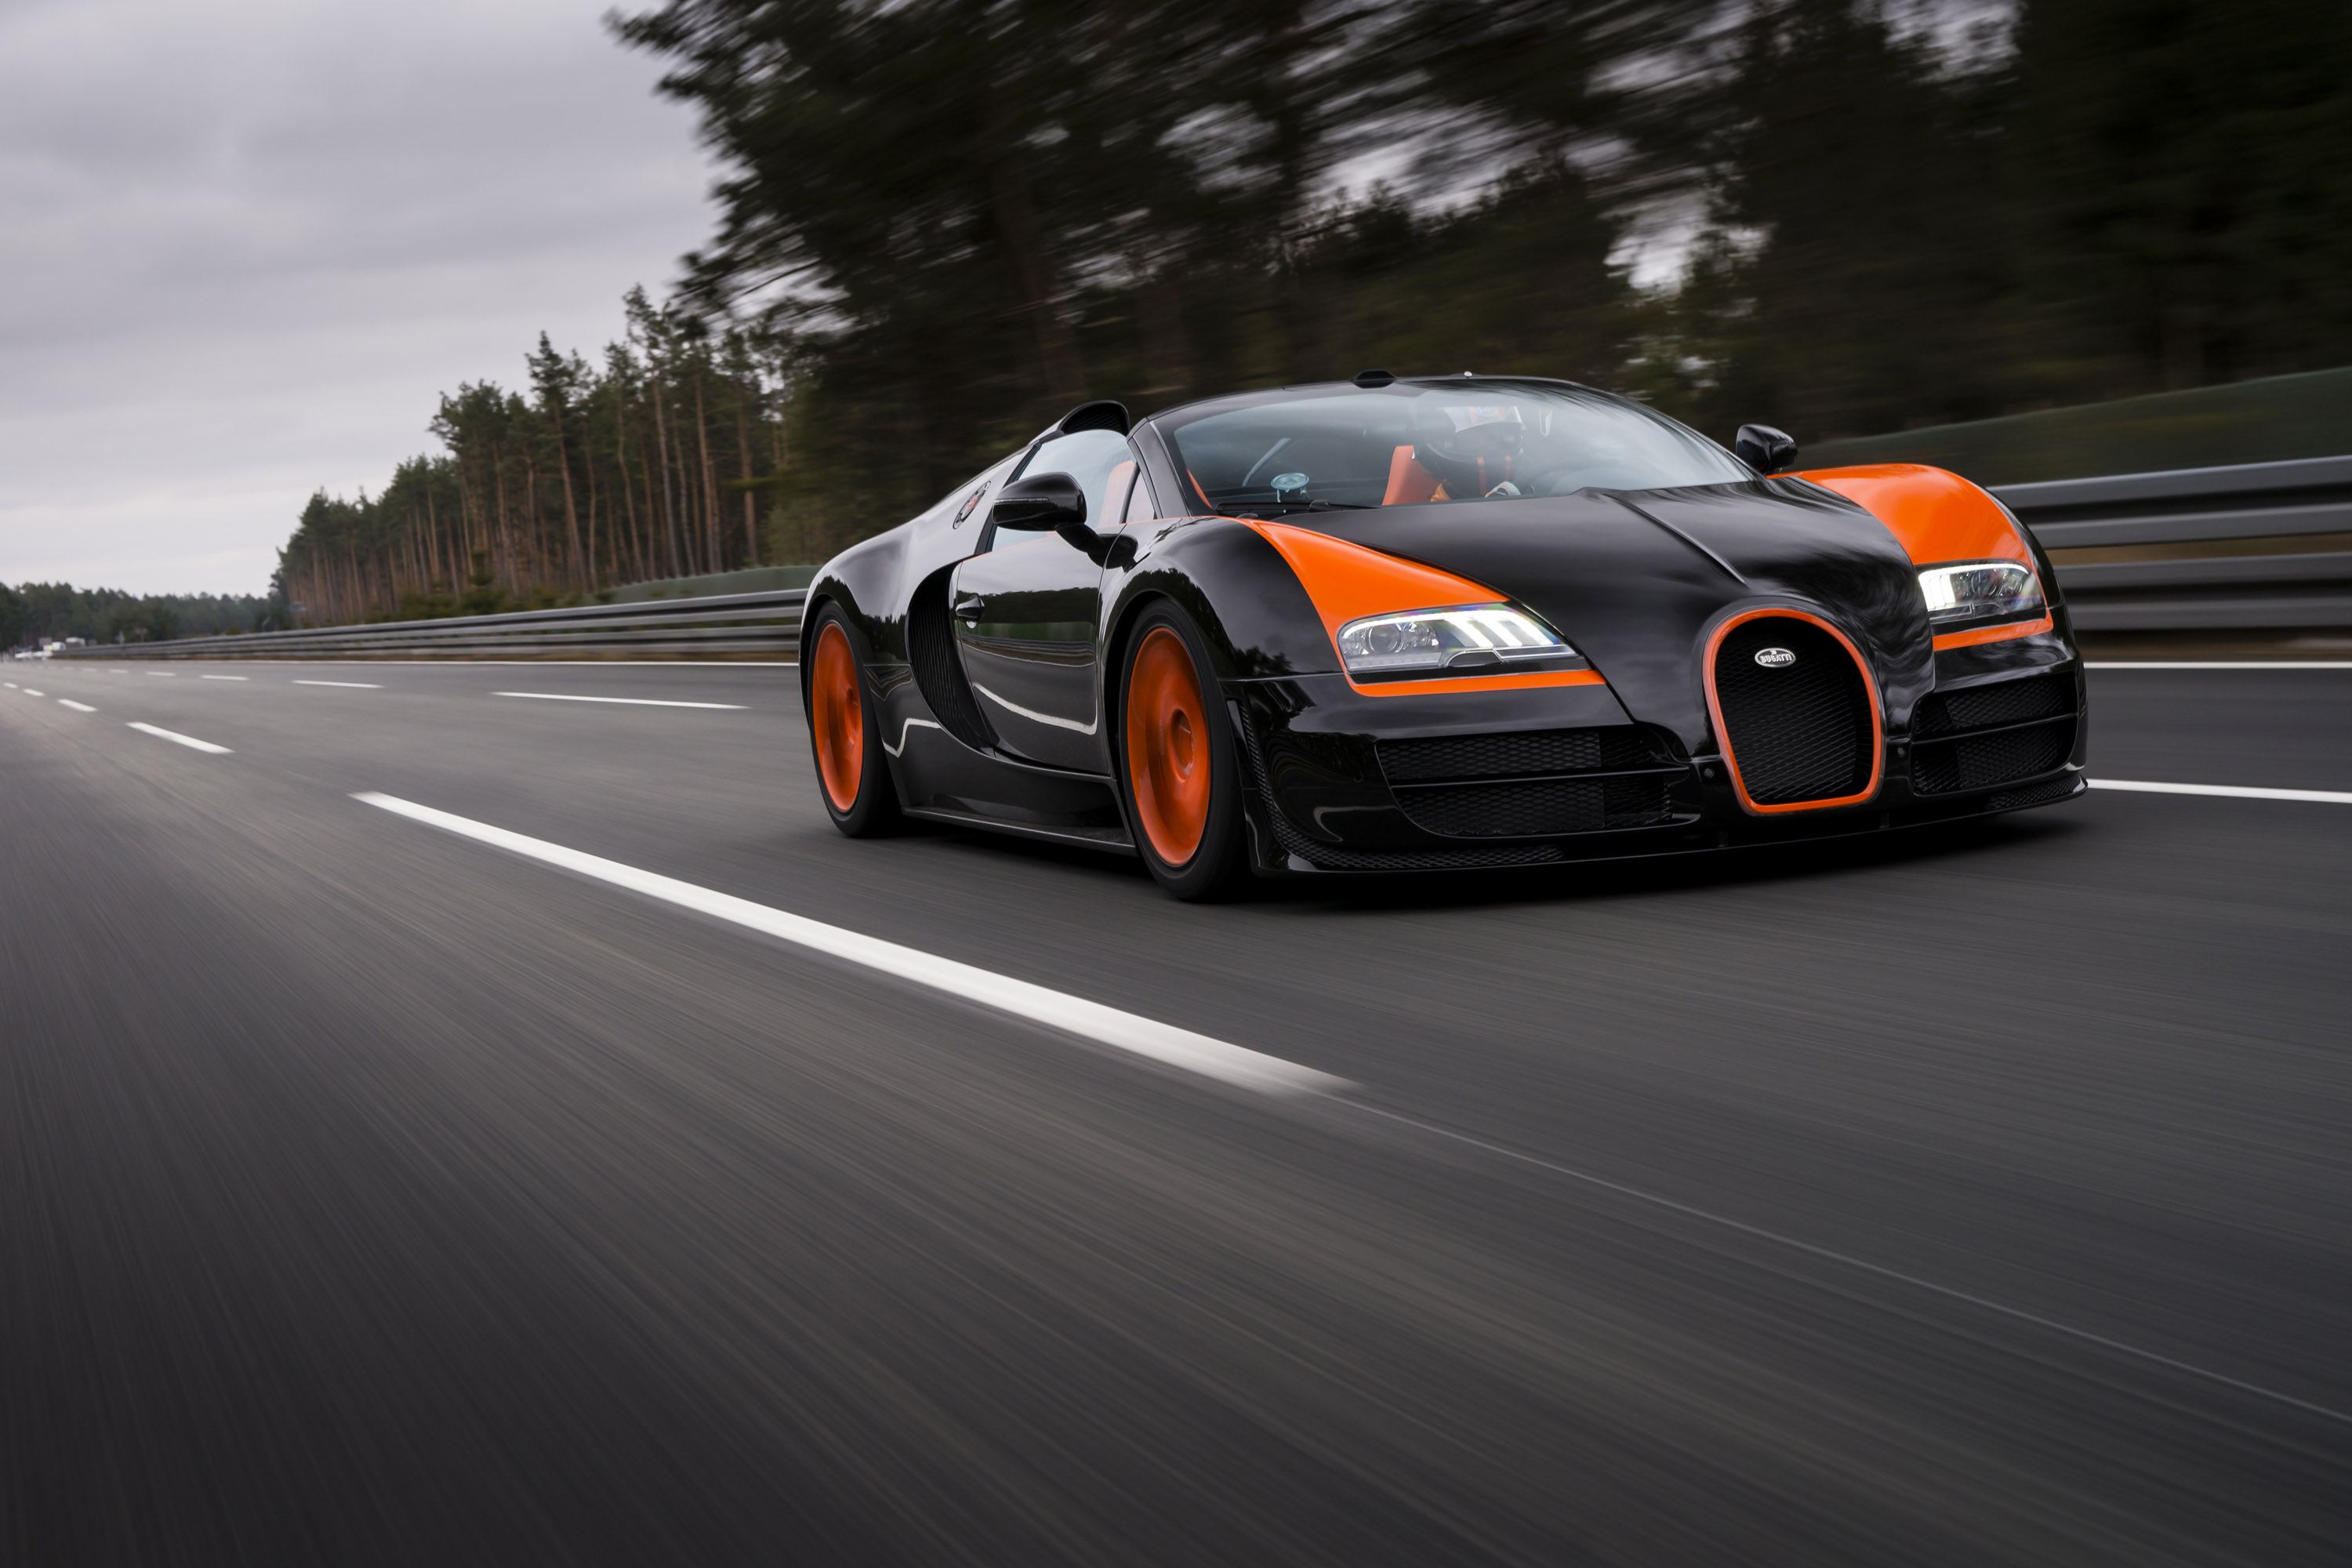 bugatti-veyron-grand-sport-vitesse-world-record-car-edition-10 Extraordinary Bugatti Veyron Grand Sport Vitesse Specs Cars Trend